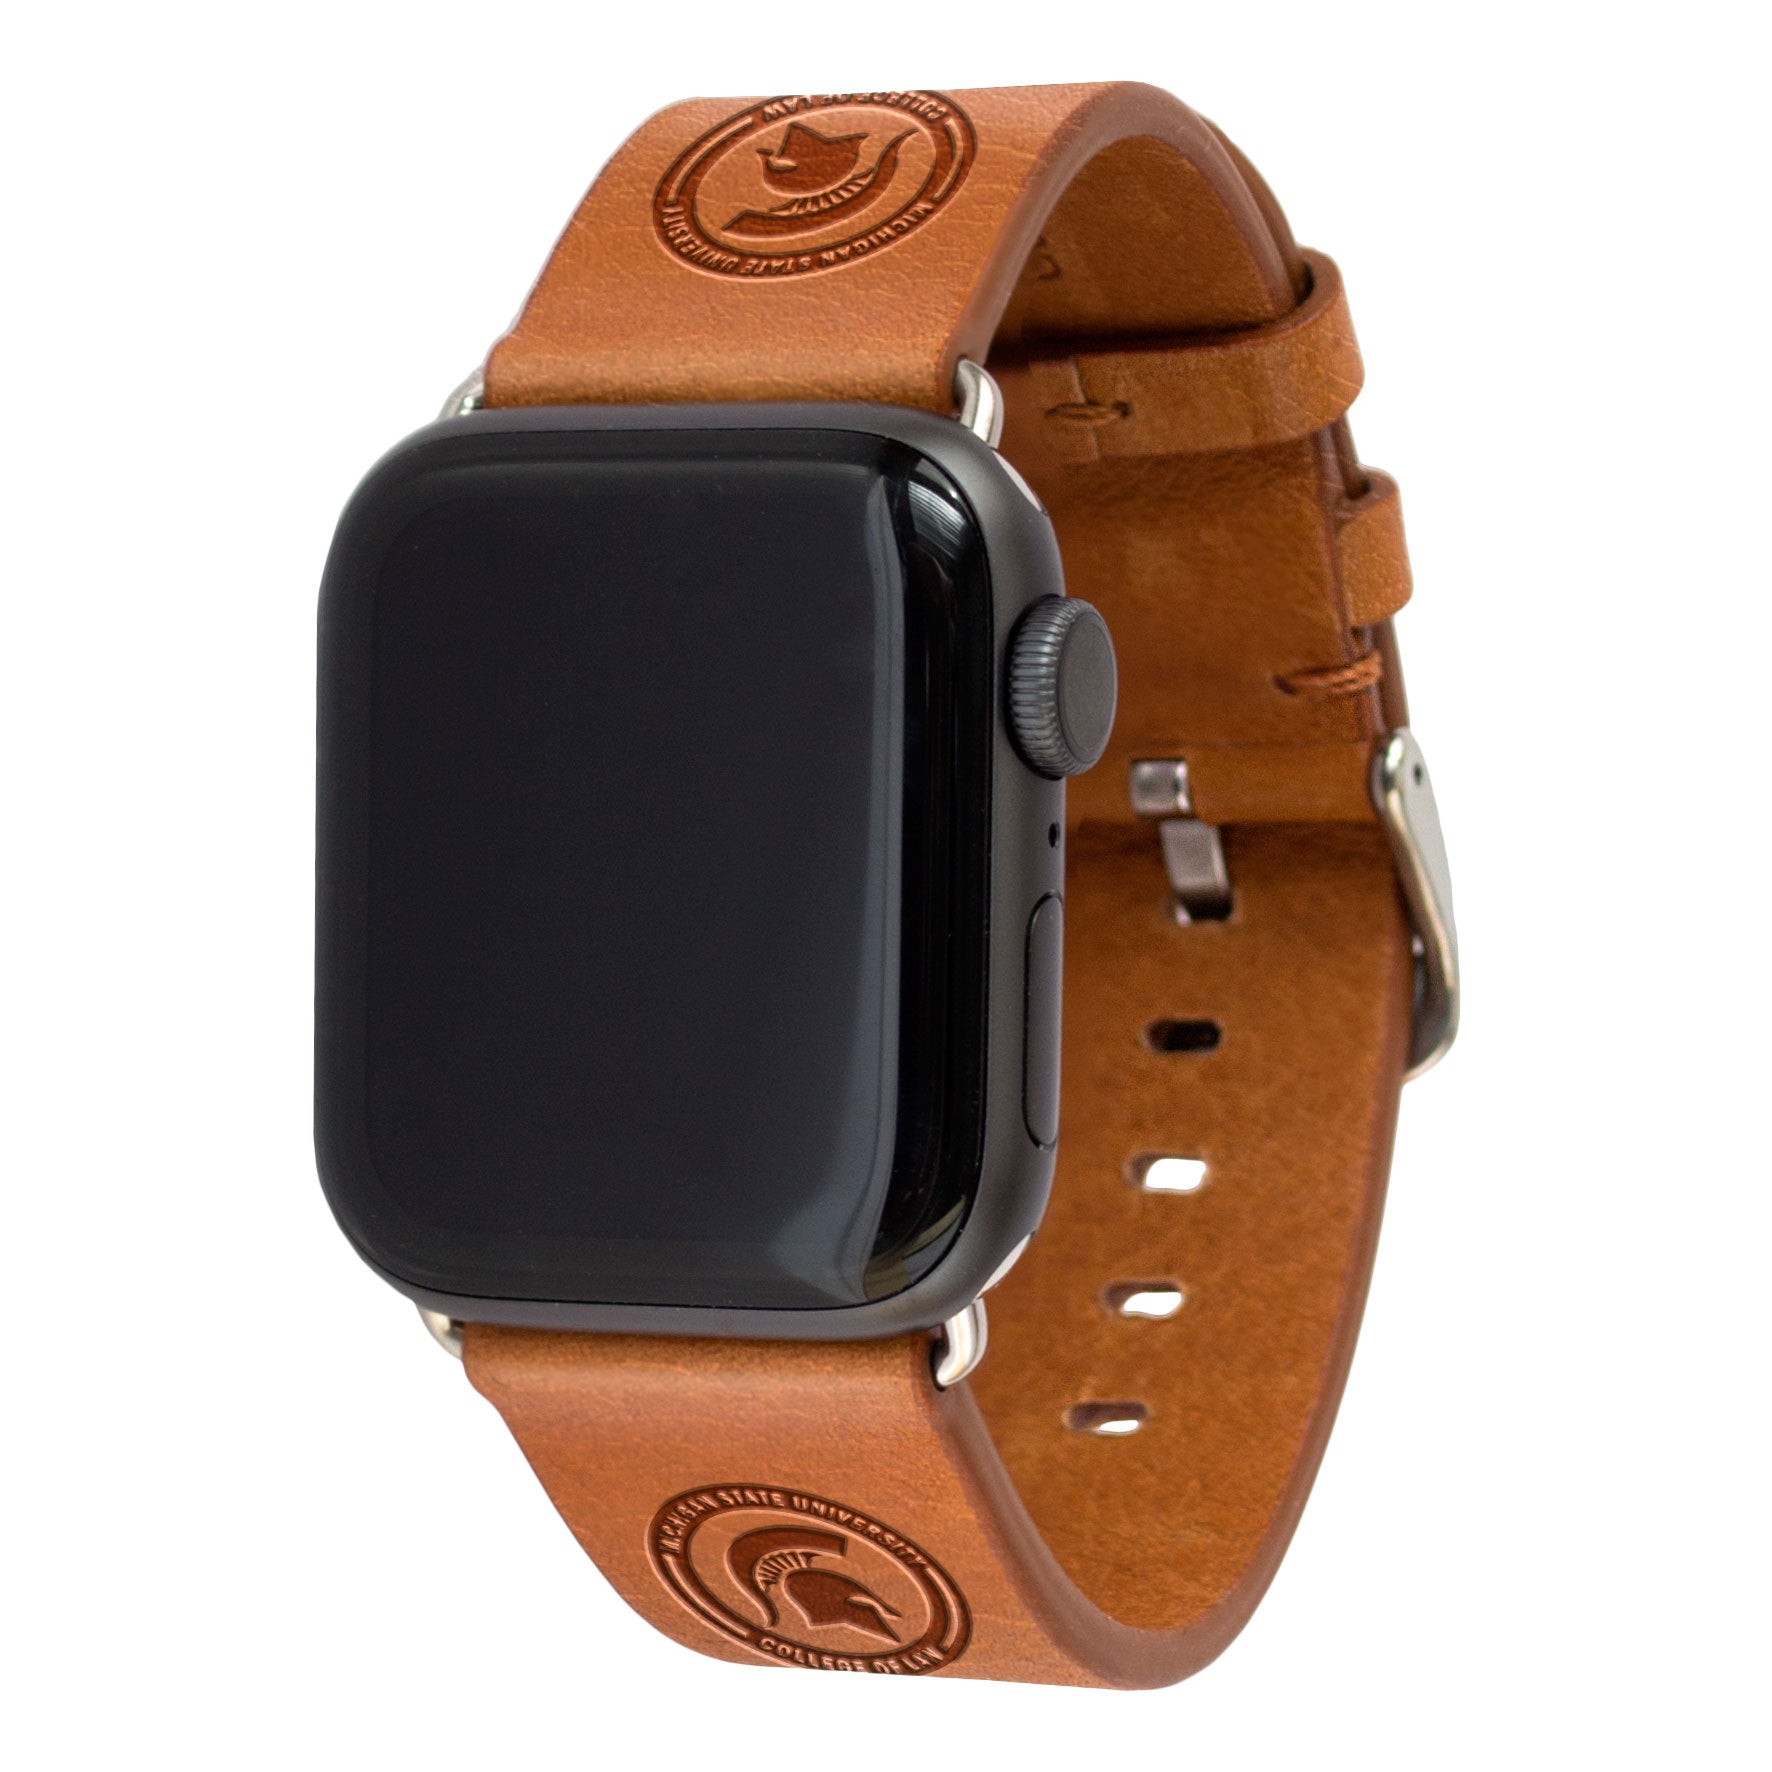 Michigan State University College of Law Leather Apple Watch Band